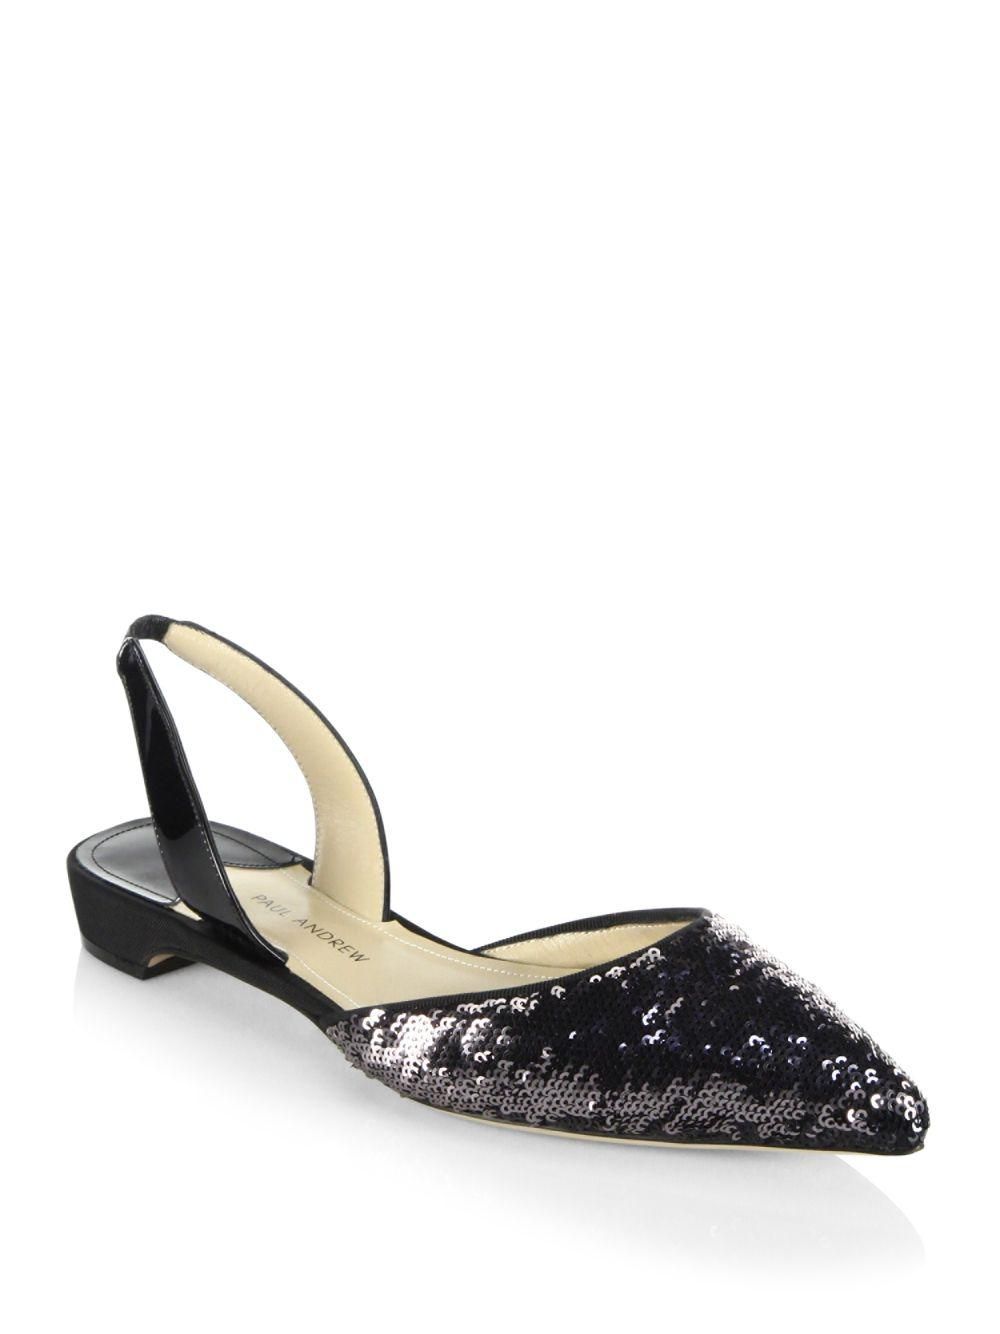 free shipping for sale Paul Andrew Sequined Slide Sandals free shipping ebay latest collections sale online 100% guaranteed for sale for sale wholesale price mcejUdNI